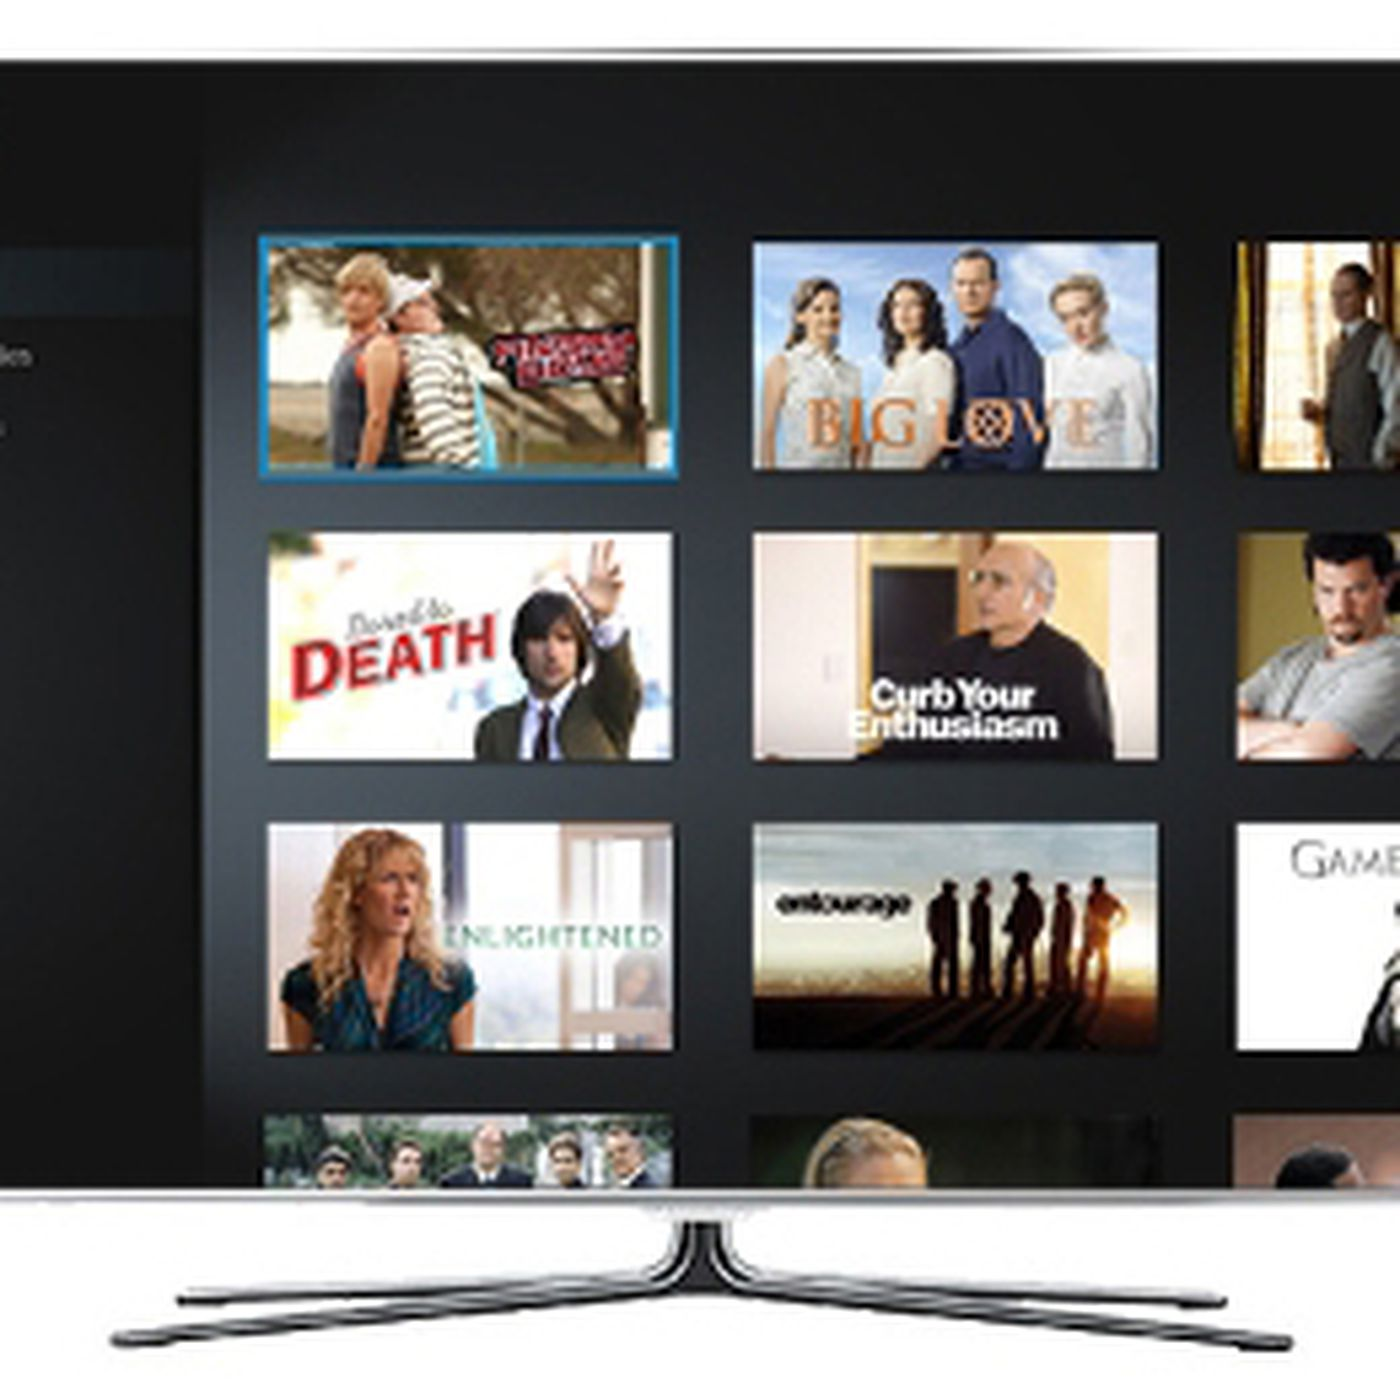 HBO Go now available on select Samsung Smart TVs - The Verge